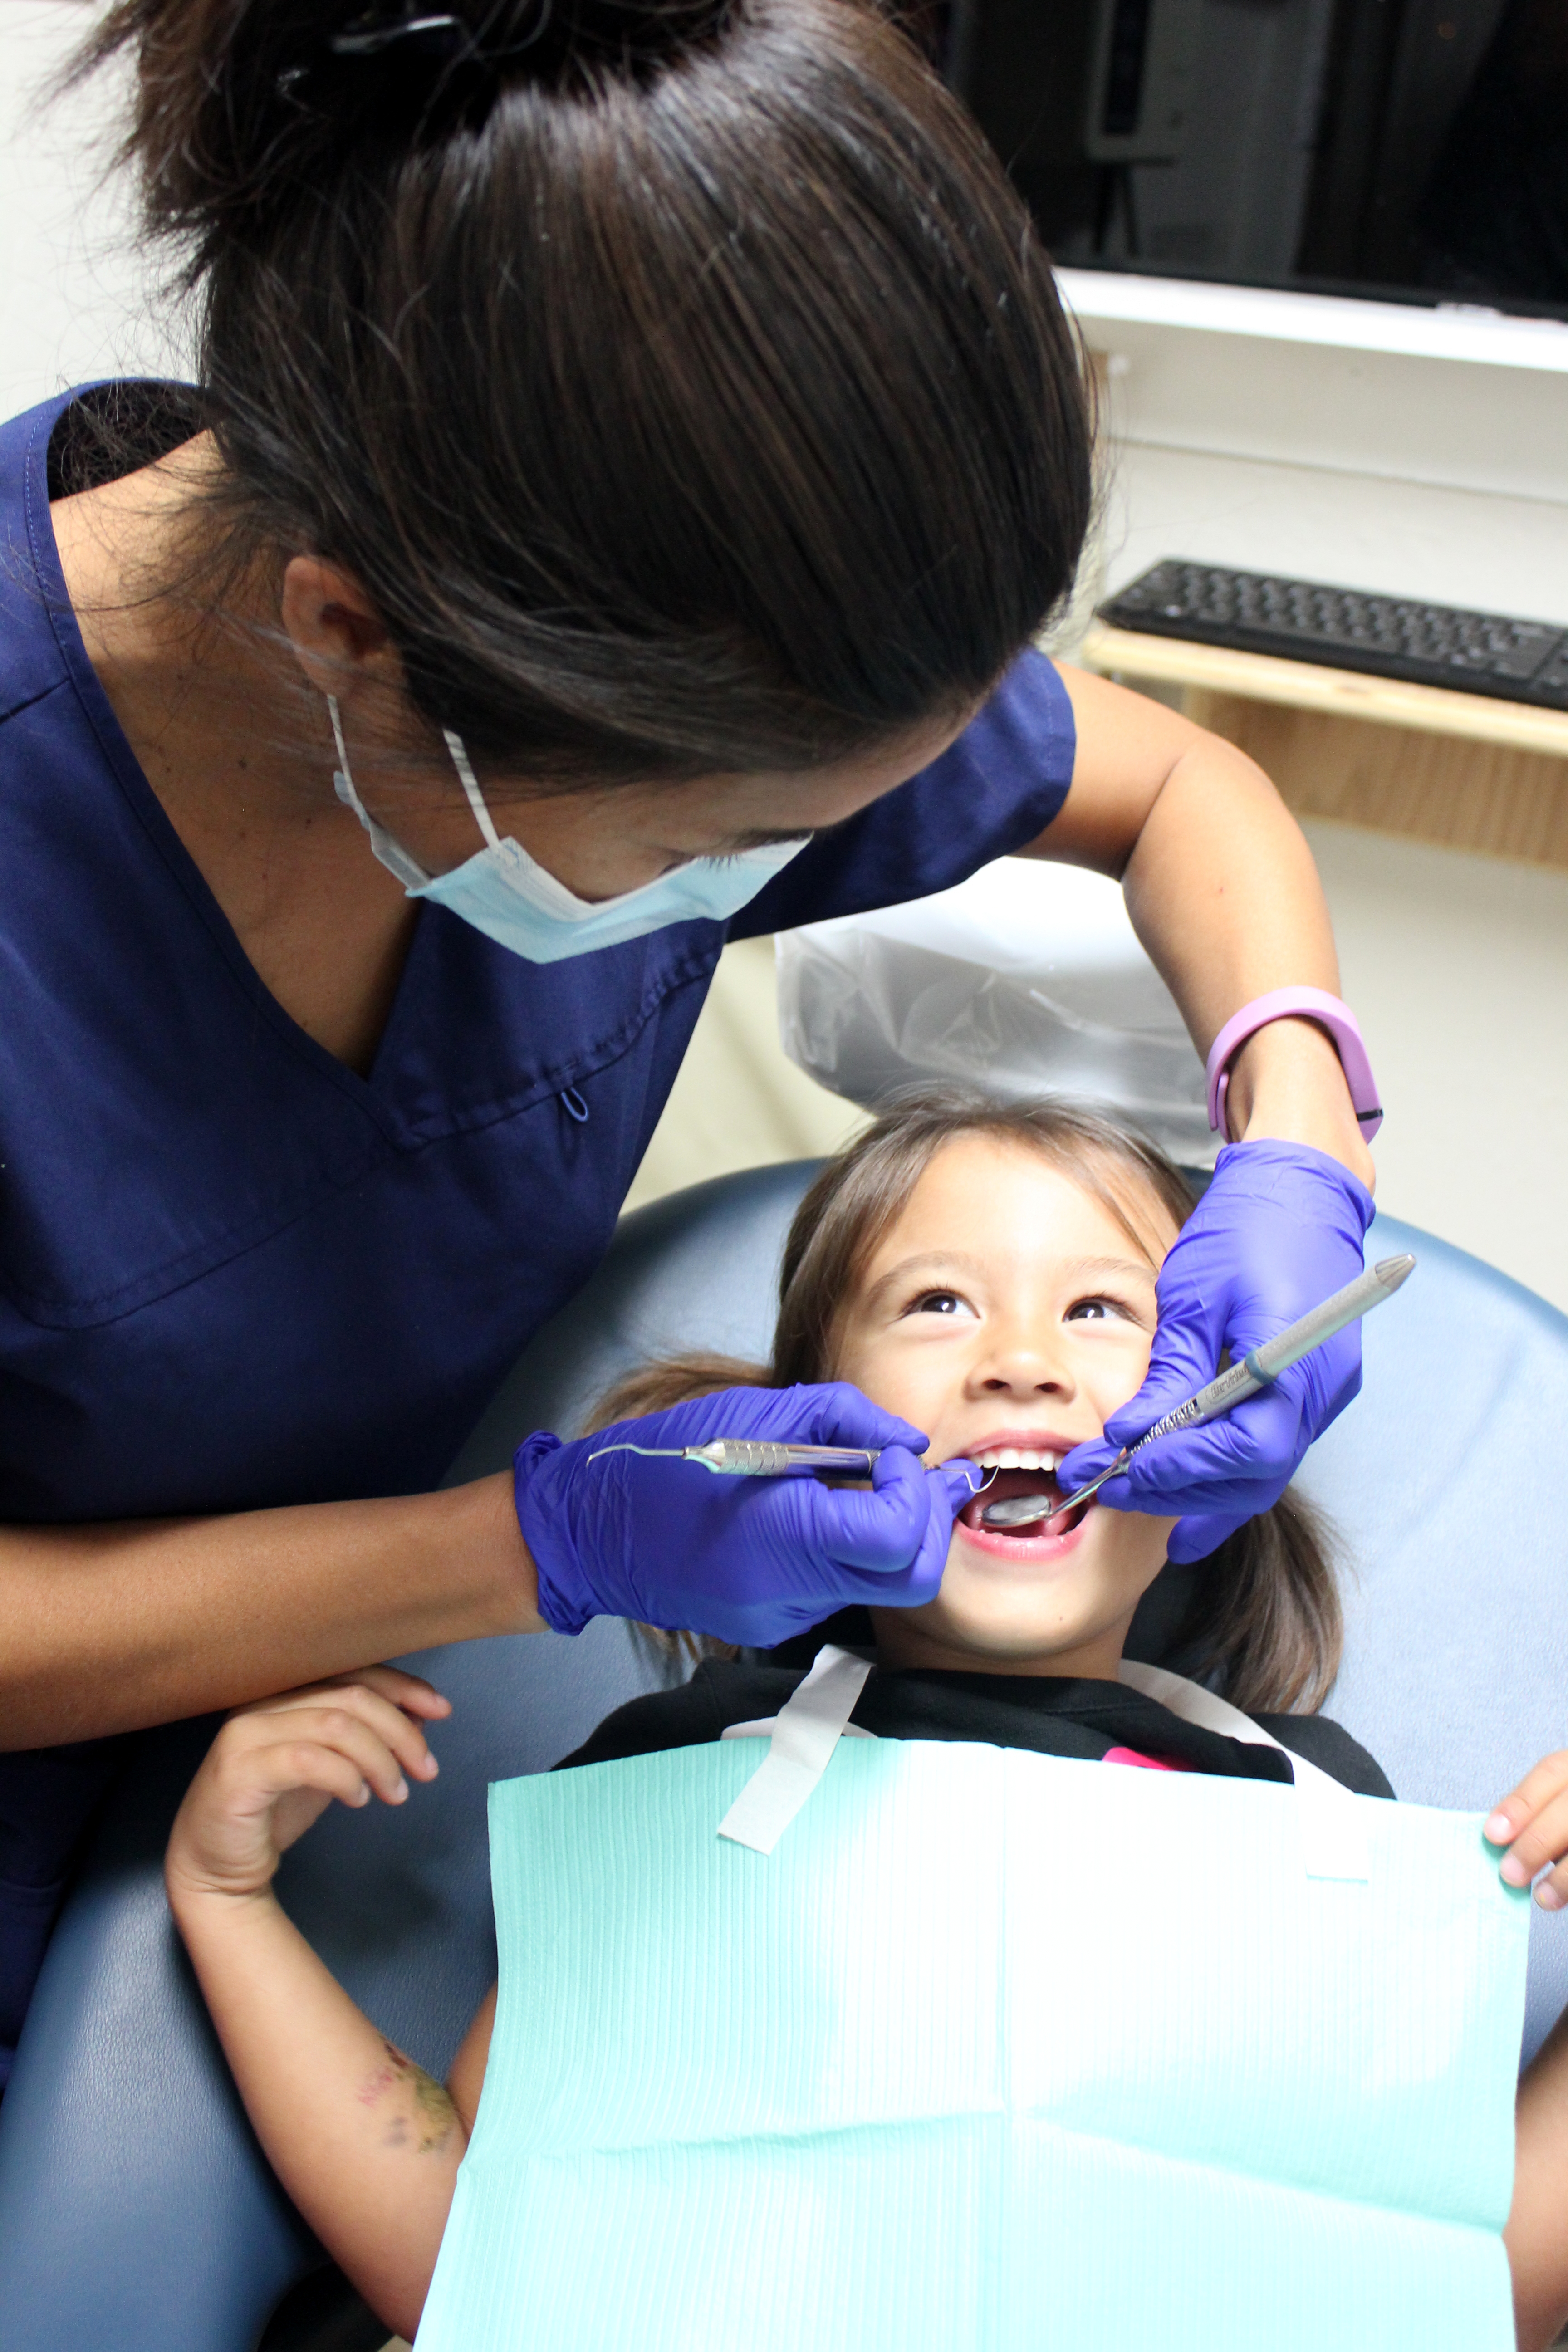 Wisdom Tooth: Who, What, When, Where and Why